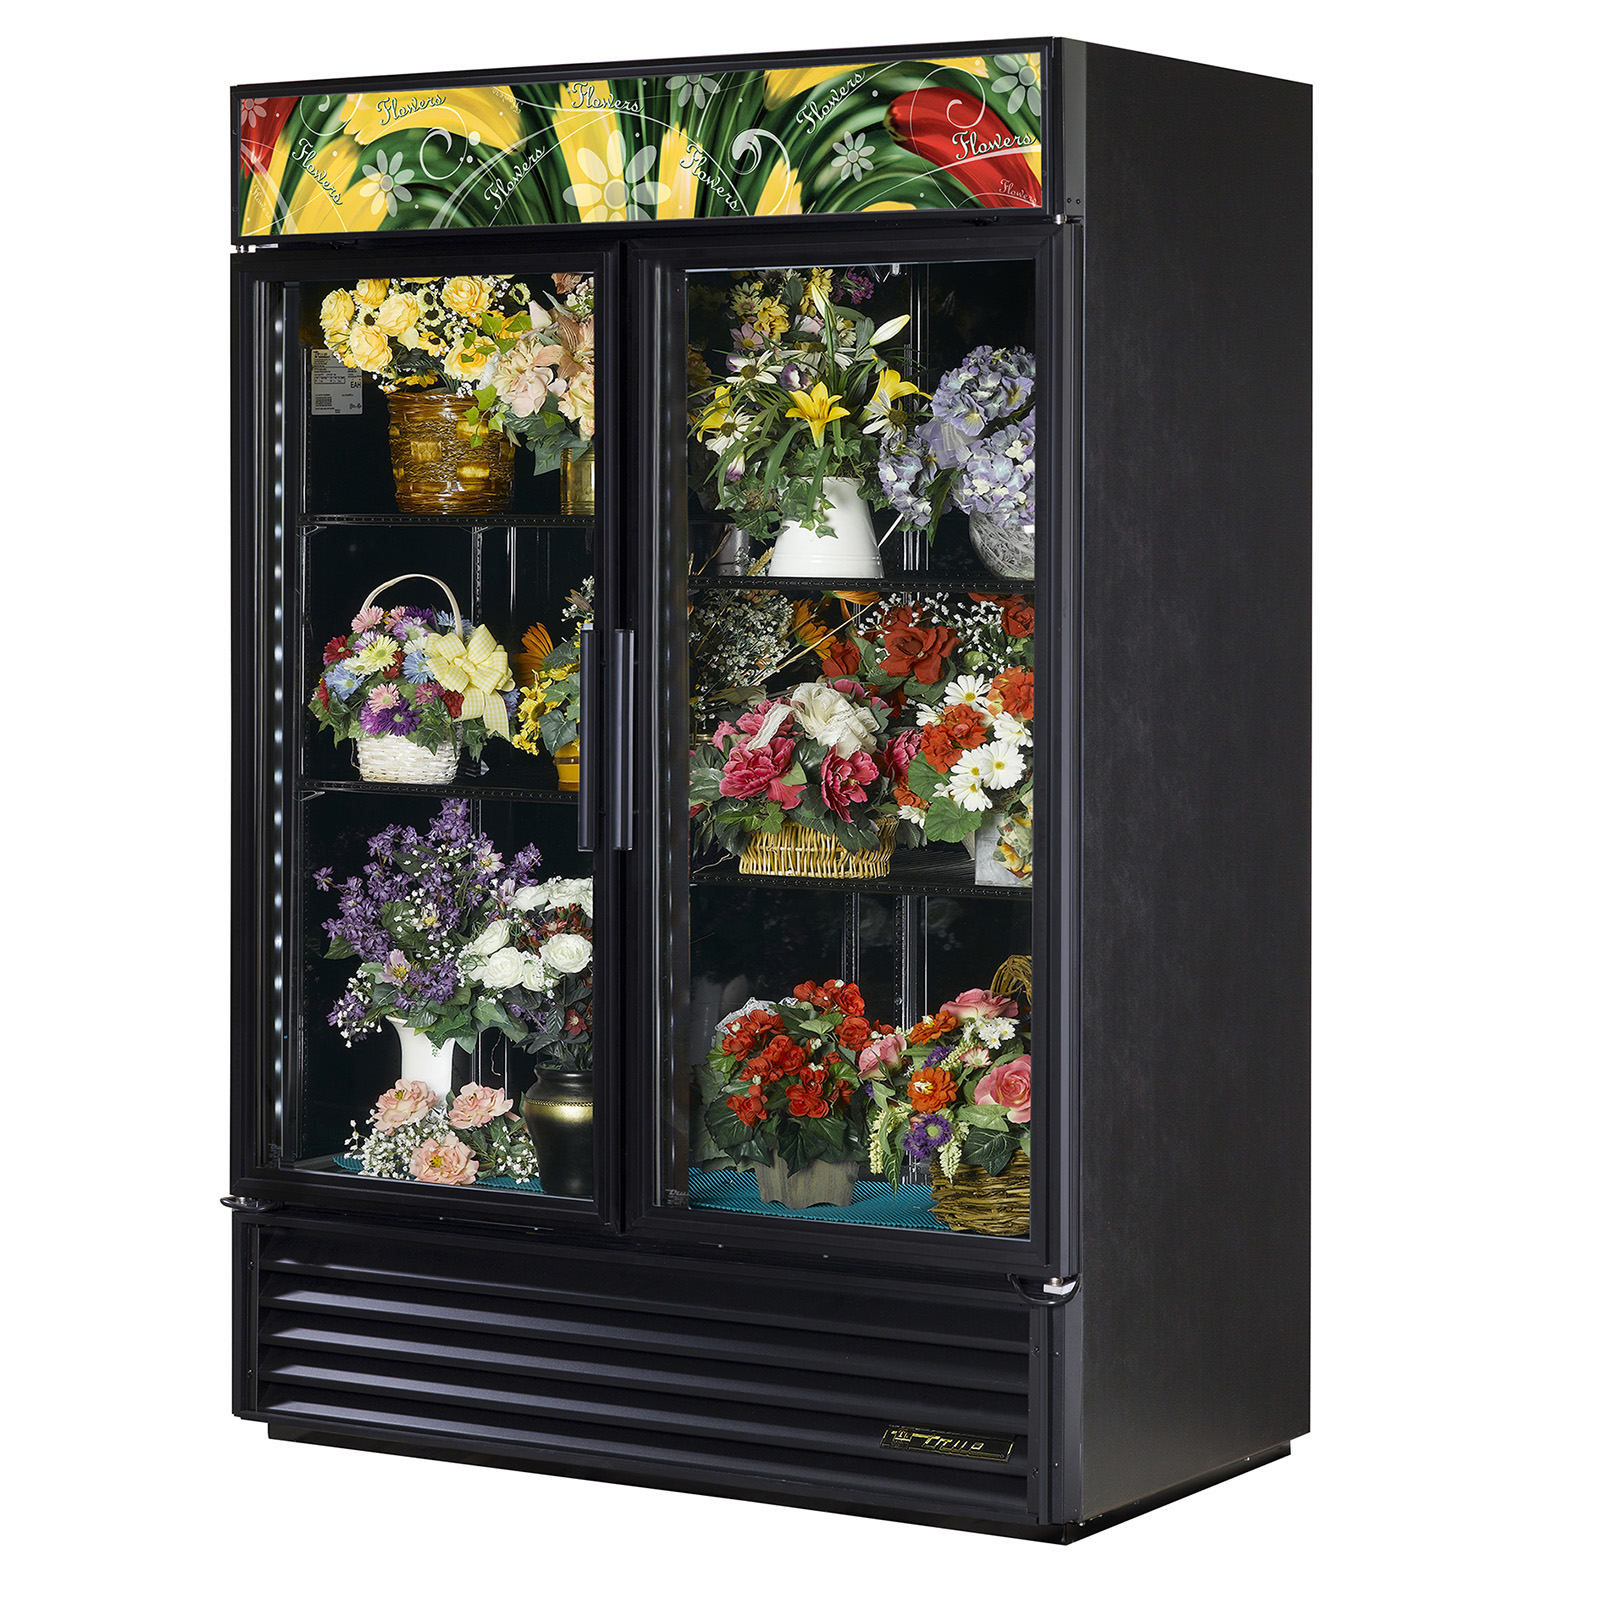 GDM-49FC-LD – True Display Floral Chiller